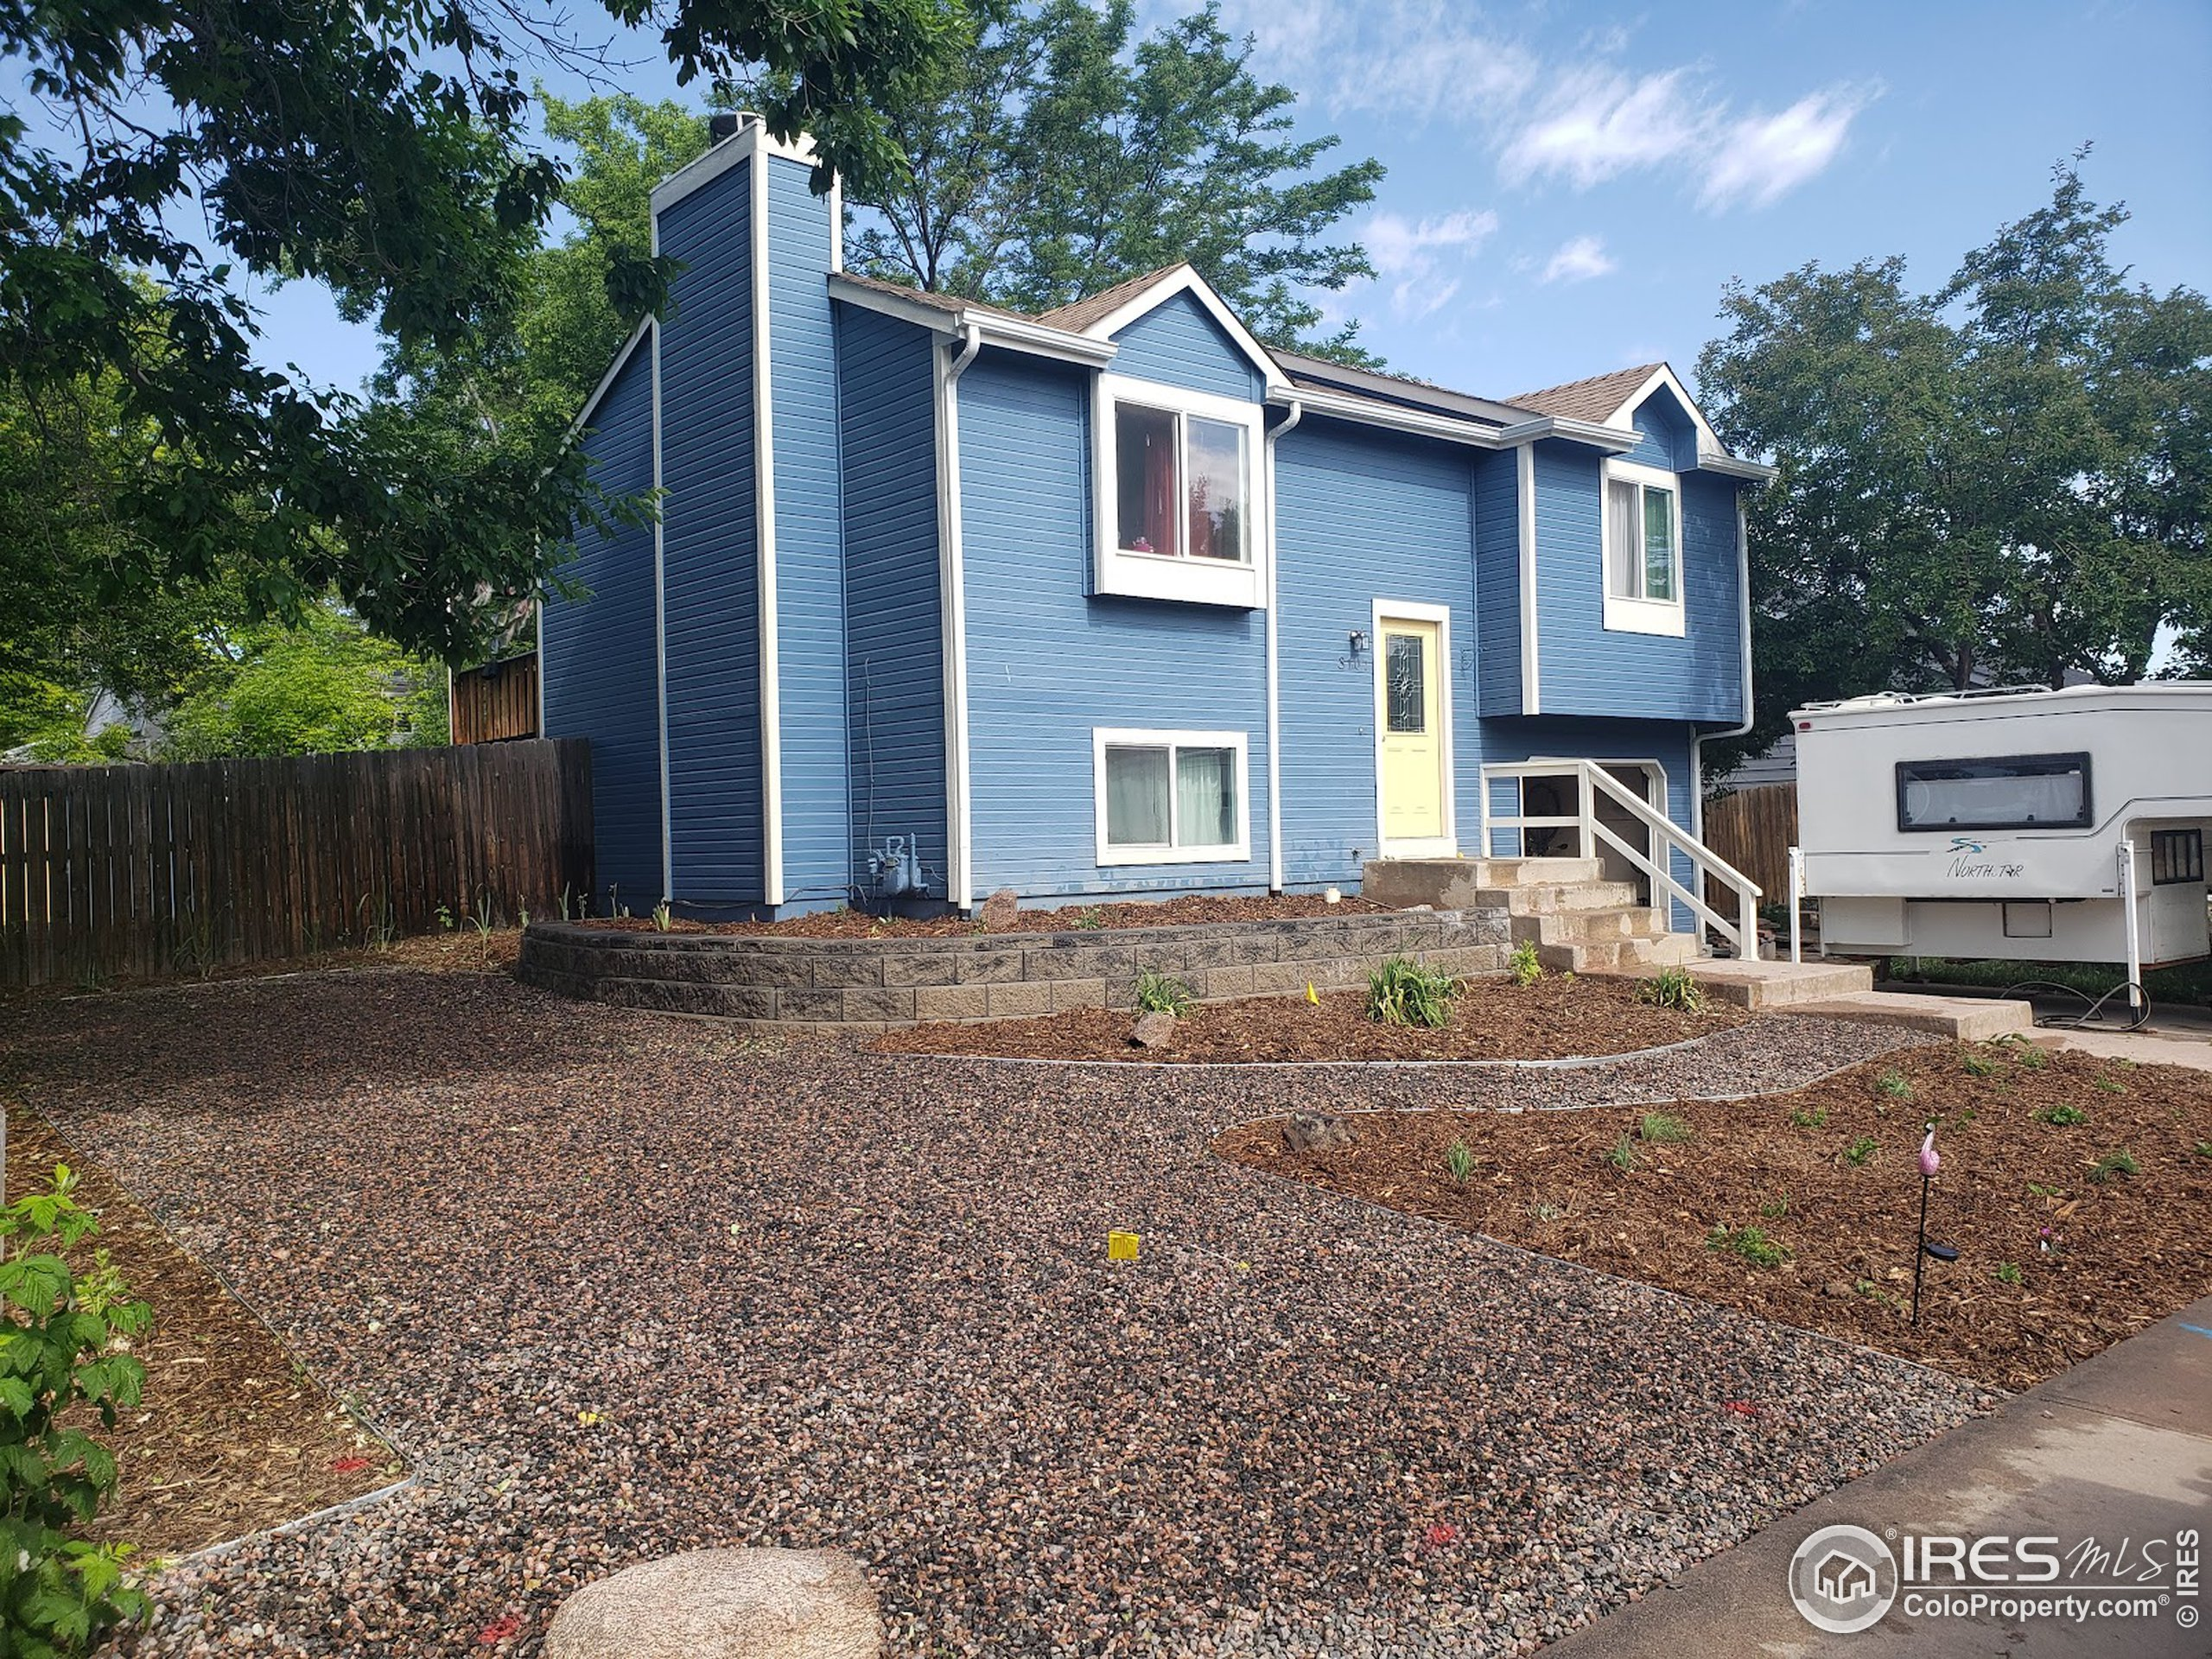 Beautiful split level in the Wagon Wheel subdivision.  Three good size bedrooms and 2 updated bathrooms.  Fun Kitchen with an eat-in dining area.  Lower level great room and bedroom have beautifully polished concrete floors.   Exterior of the home has been recently painted.  Beautiful xeriscaping in the front yard, and a big private fenced back yard.